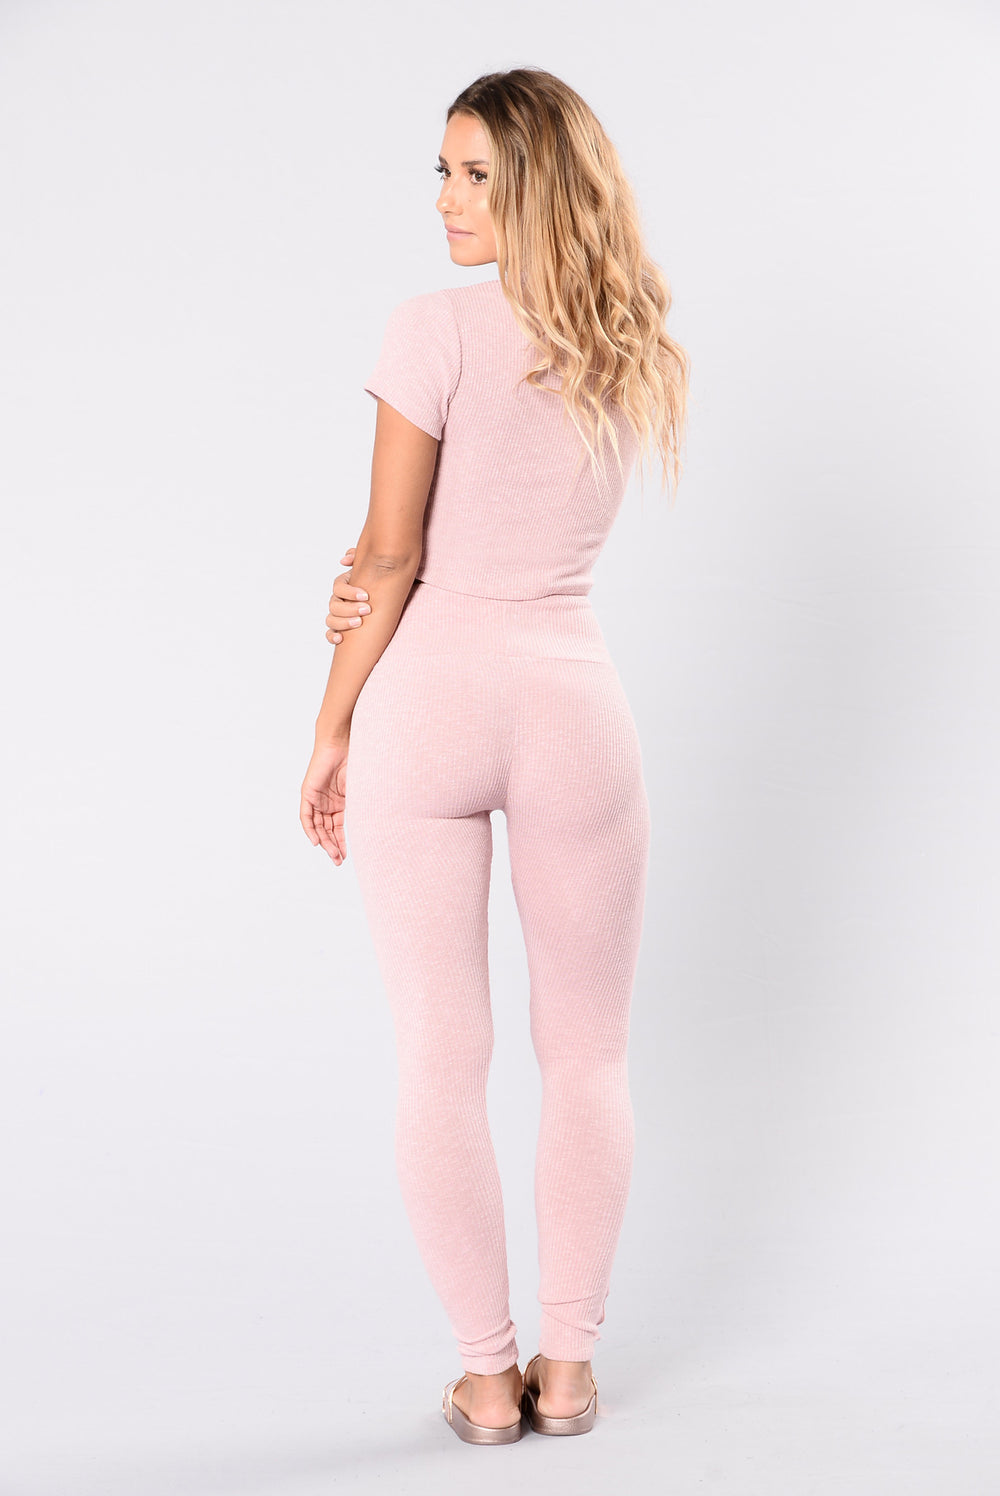 Sexy gym leggings in pink rose blush color